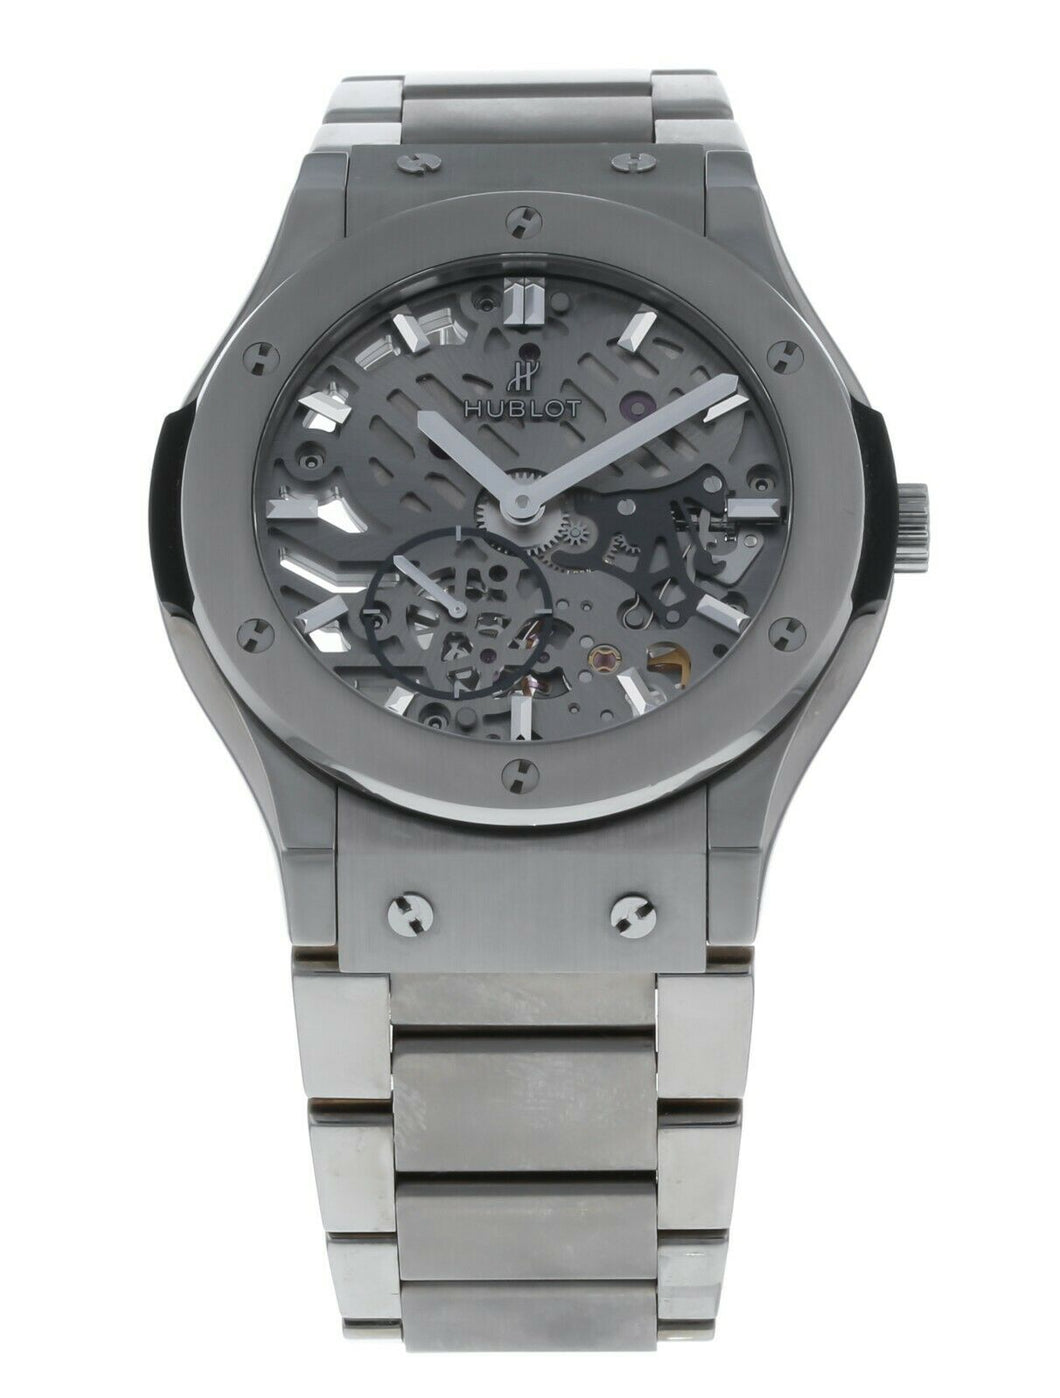 Hublot Hublot Classic Fusion Classico Ultra Thin 42mm Mens Watch 545.NX.0170.NX